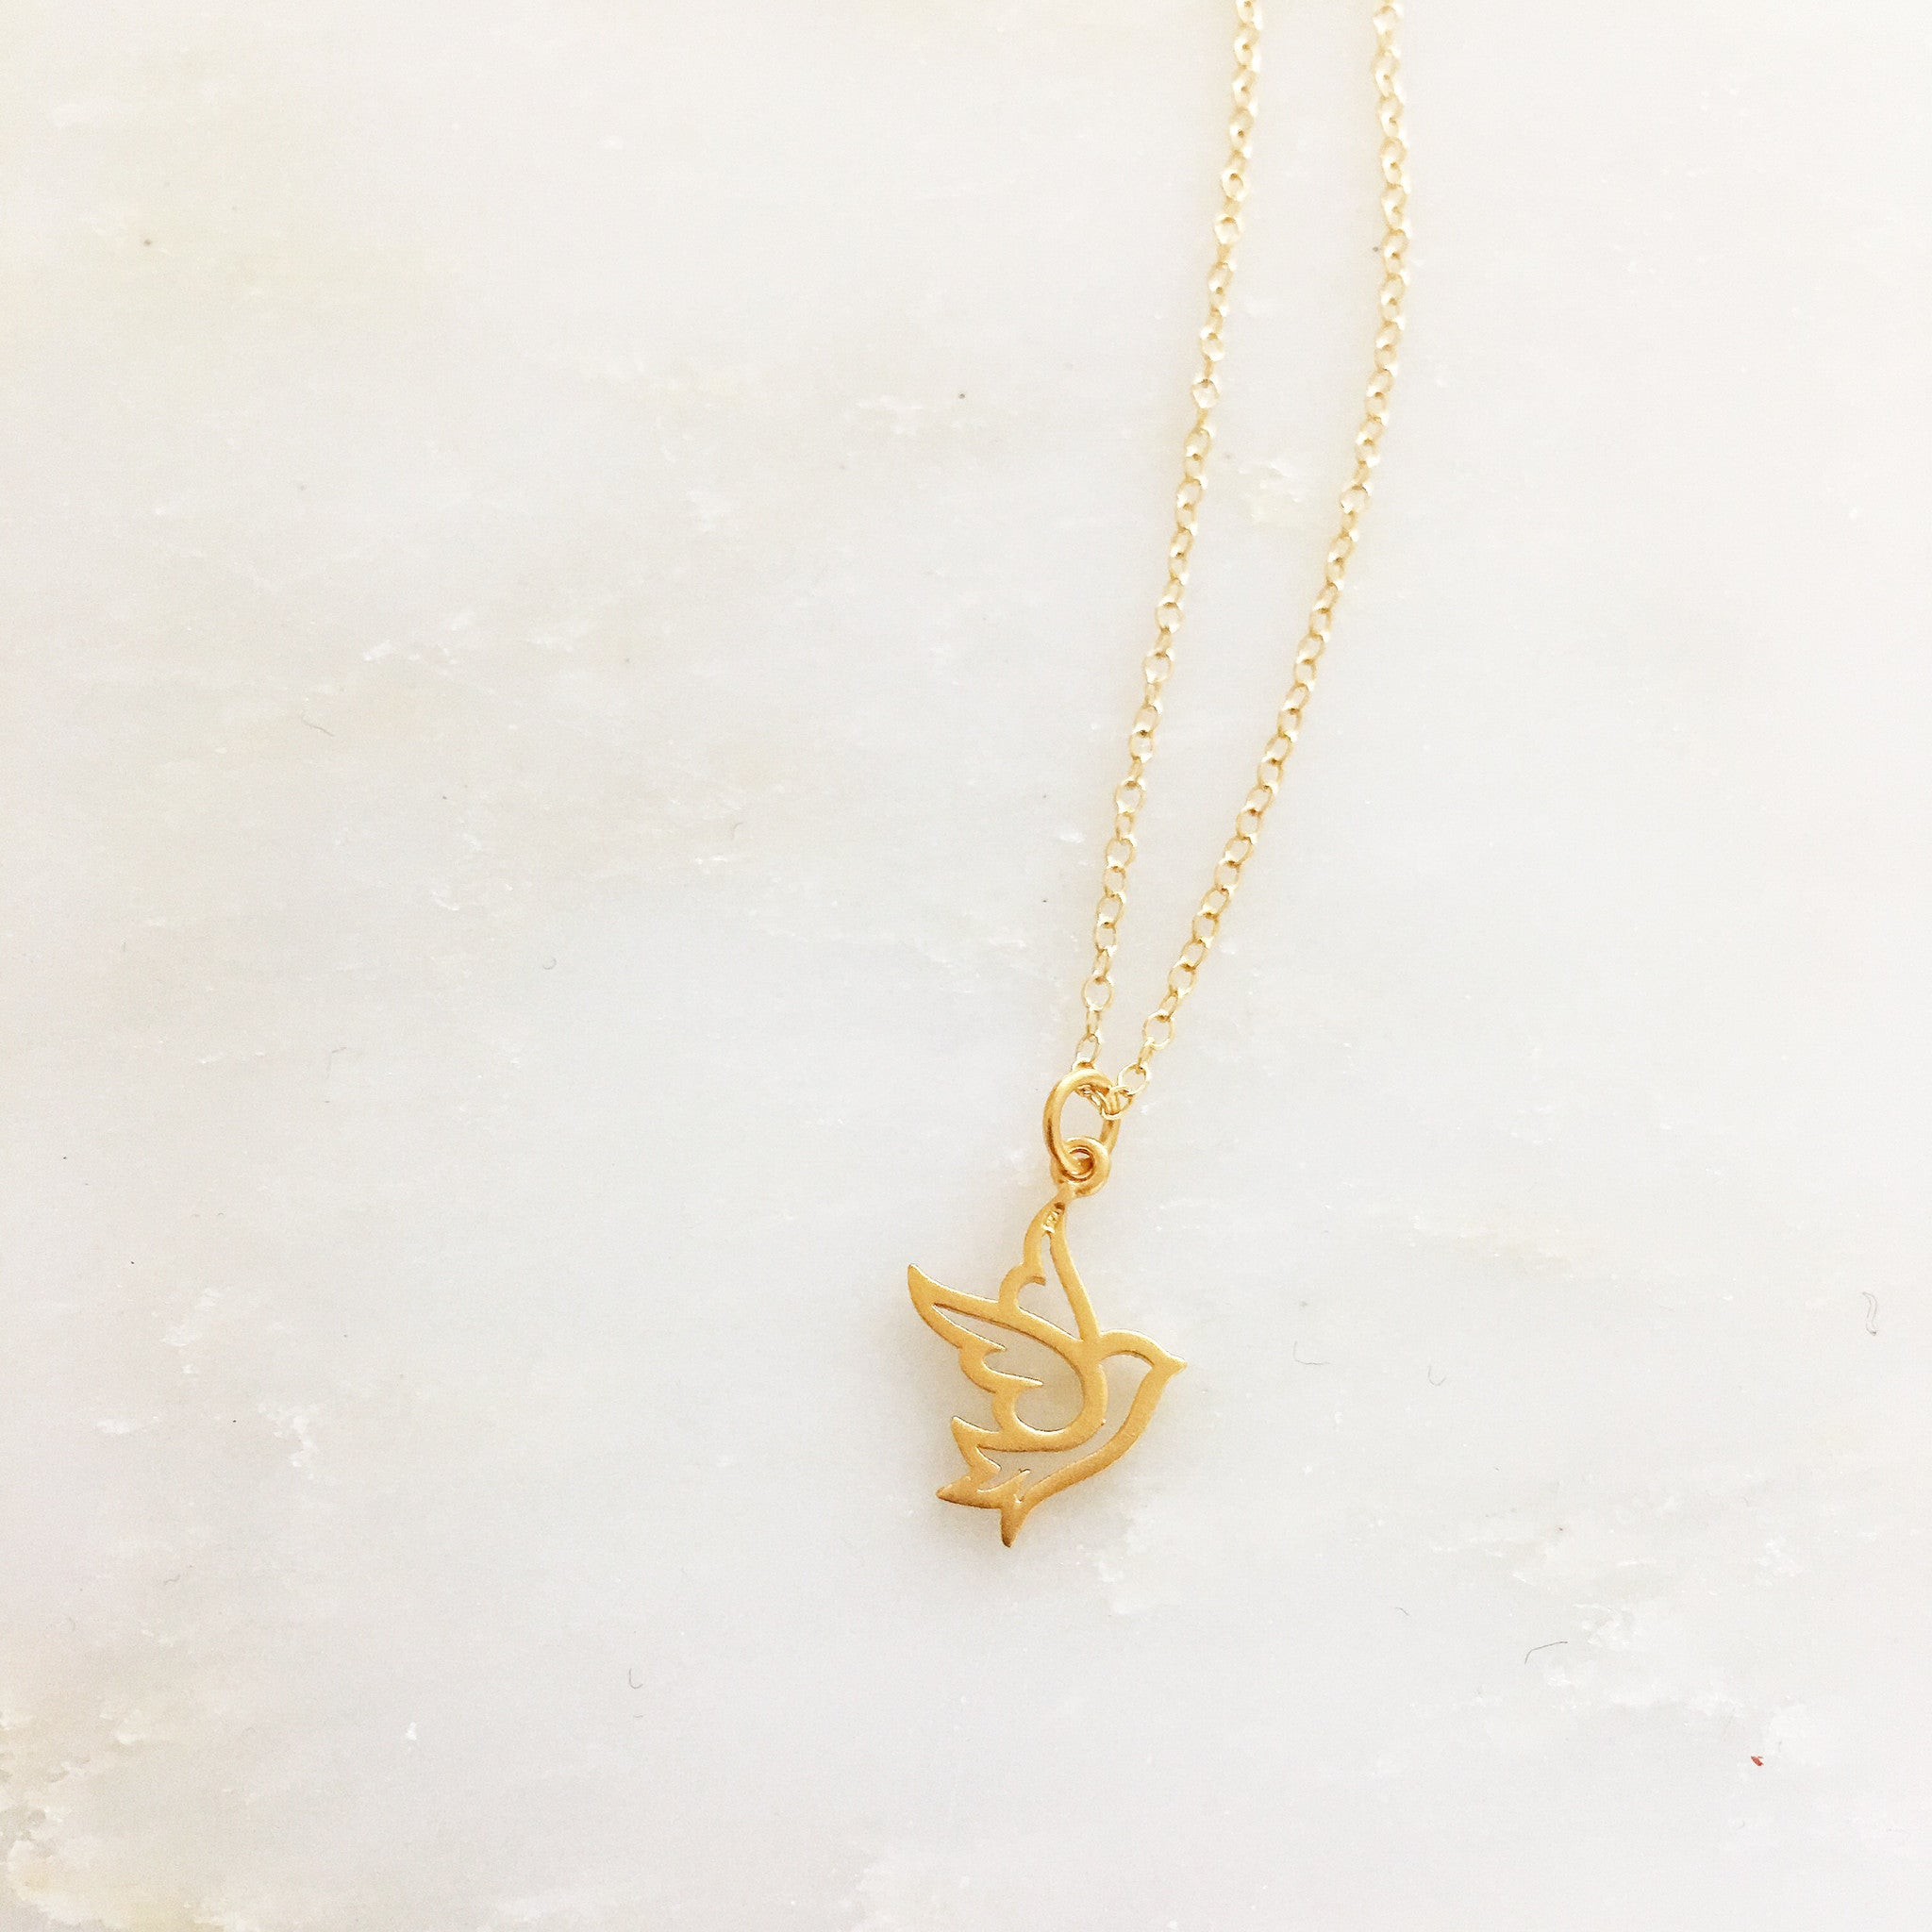 PEACE DOVE -Necklace